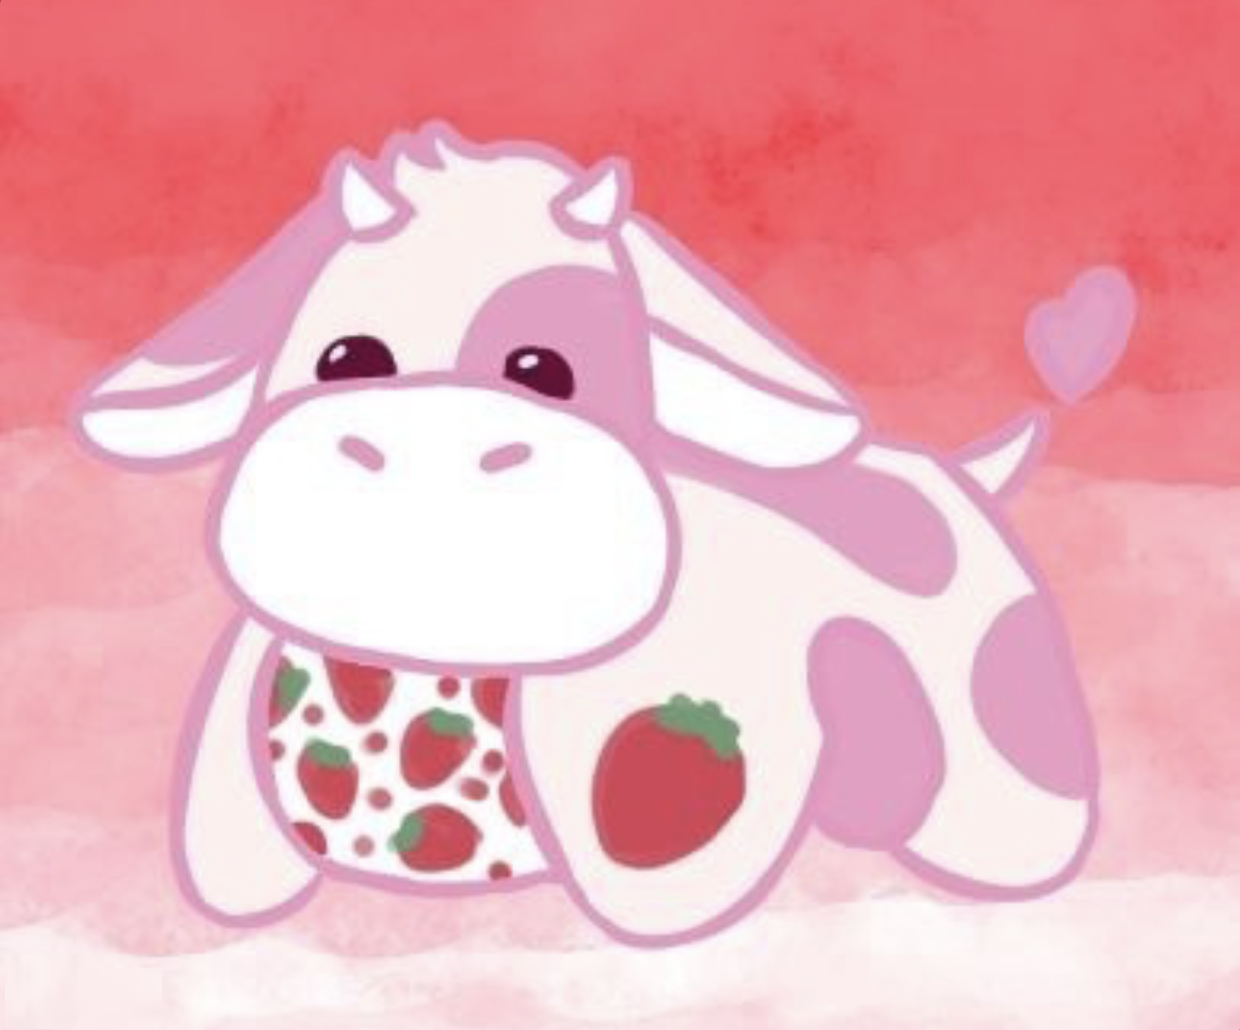 This Cutie Is Quickly Becoming One Of Our All Time Favorites Thx For The Drawing Raven Fluffy And Fabulously Soft This Straw In 2020 Animal Pillows Cute Cows Pets